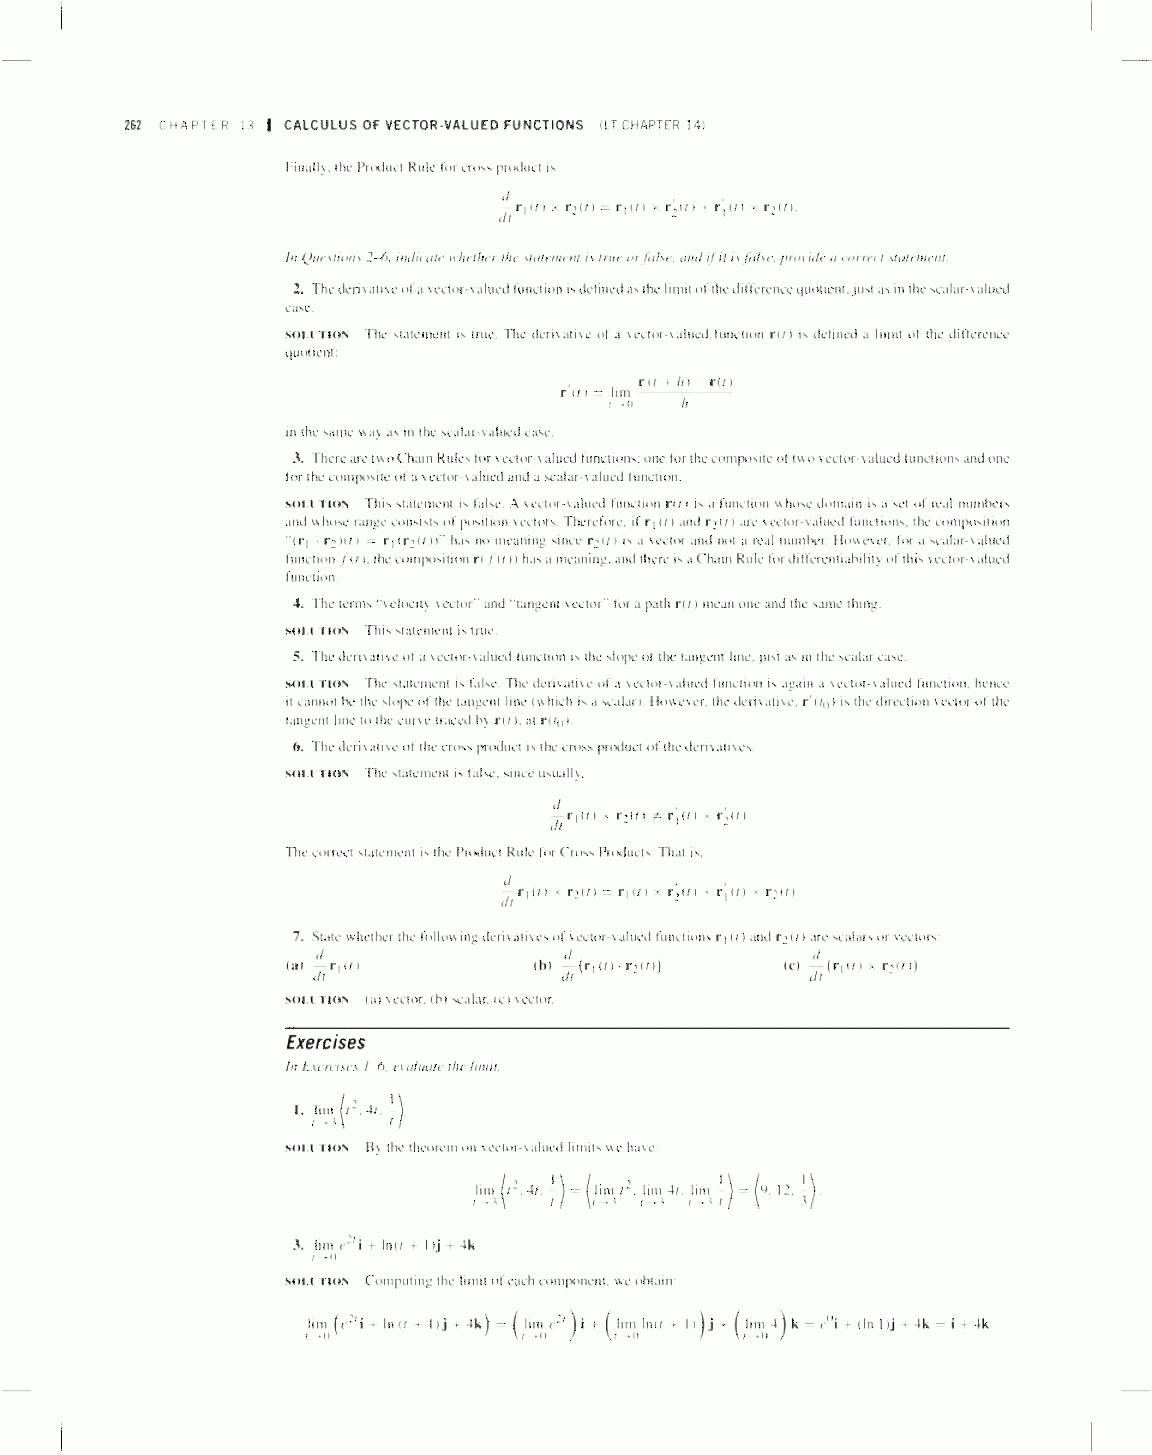 Vectors And Vector Valued Functions: Calculus Of Vector Valued Functions